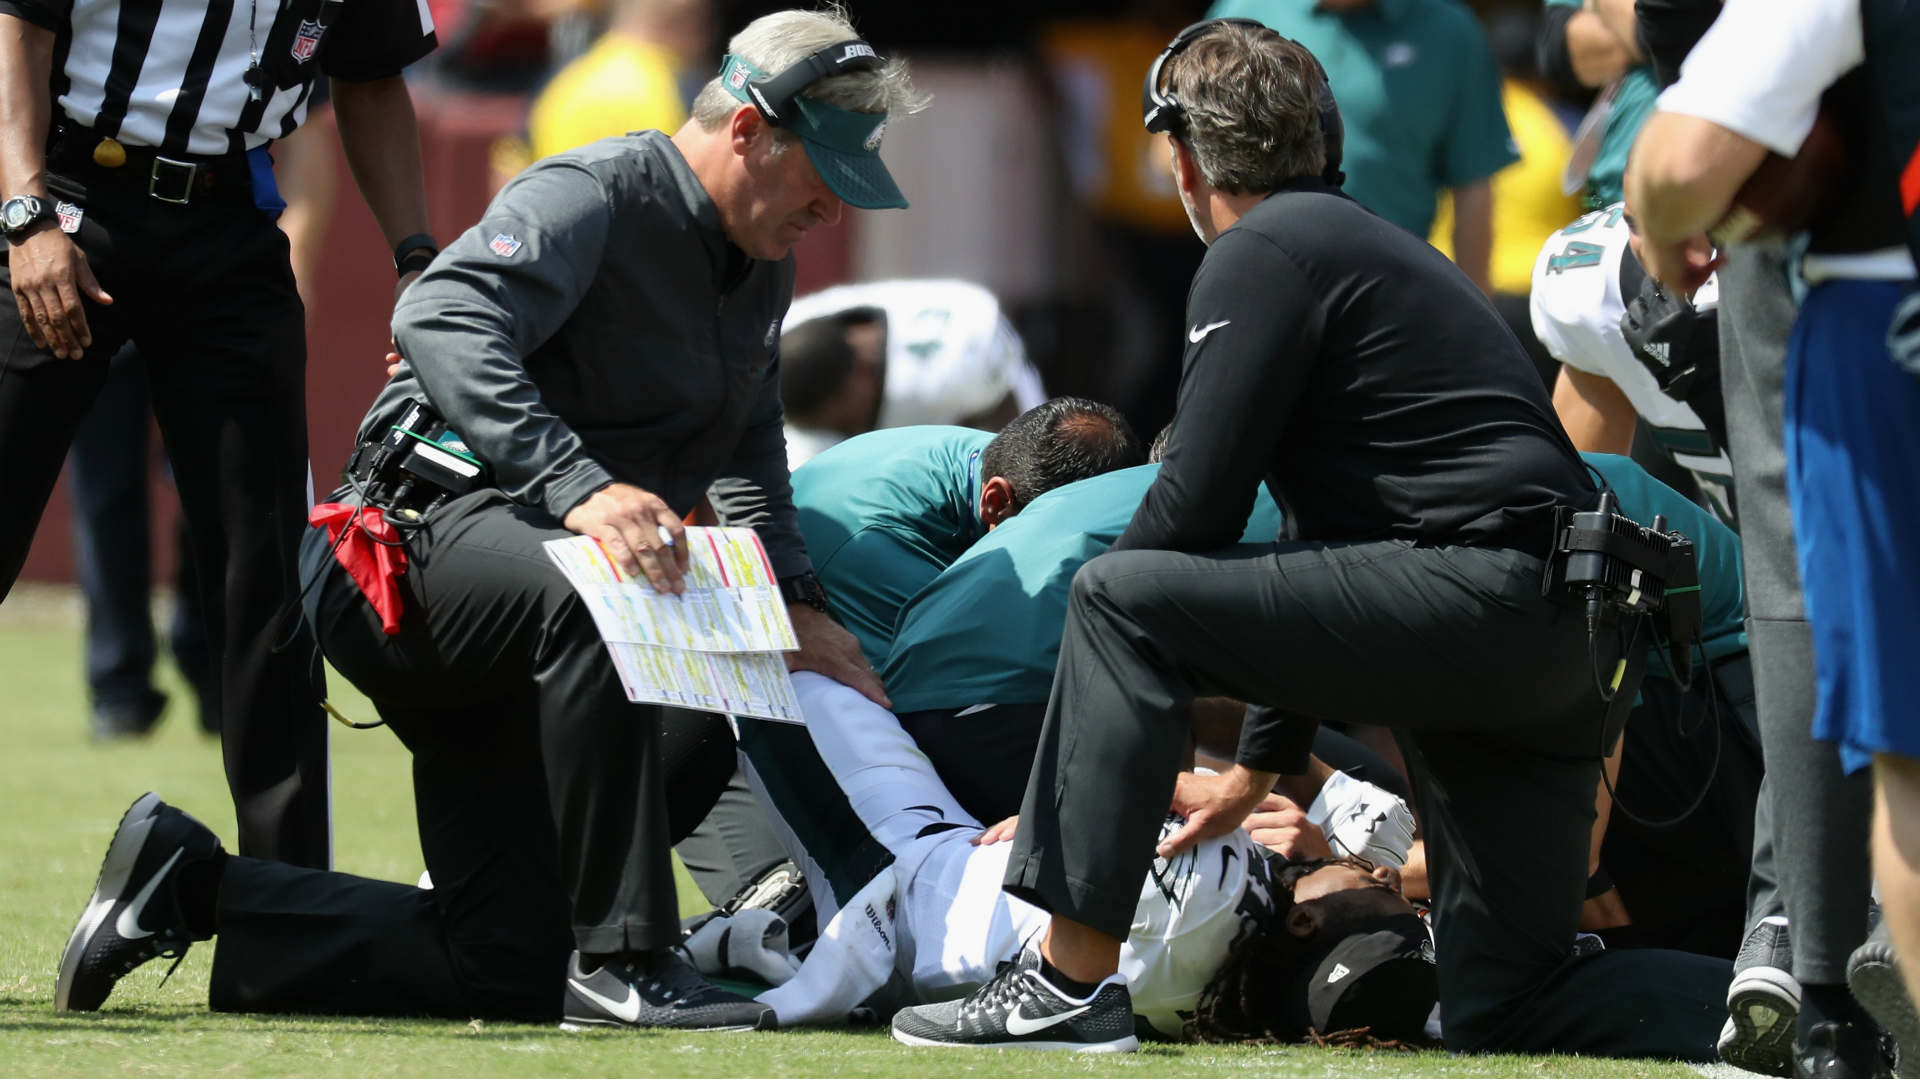 Eagles CB Ronald Darby carted off the field with right ankle injury